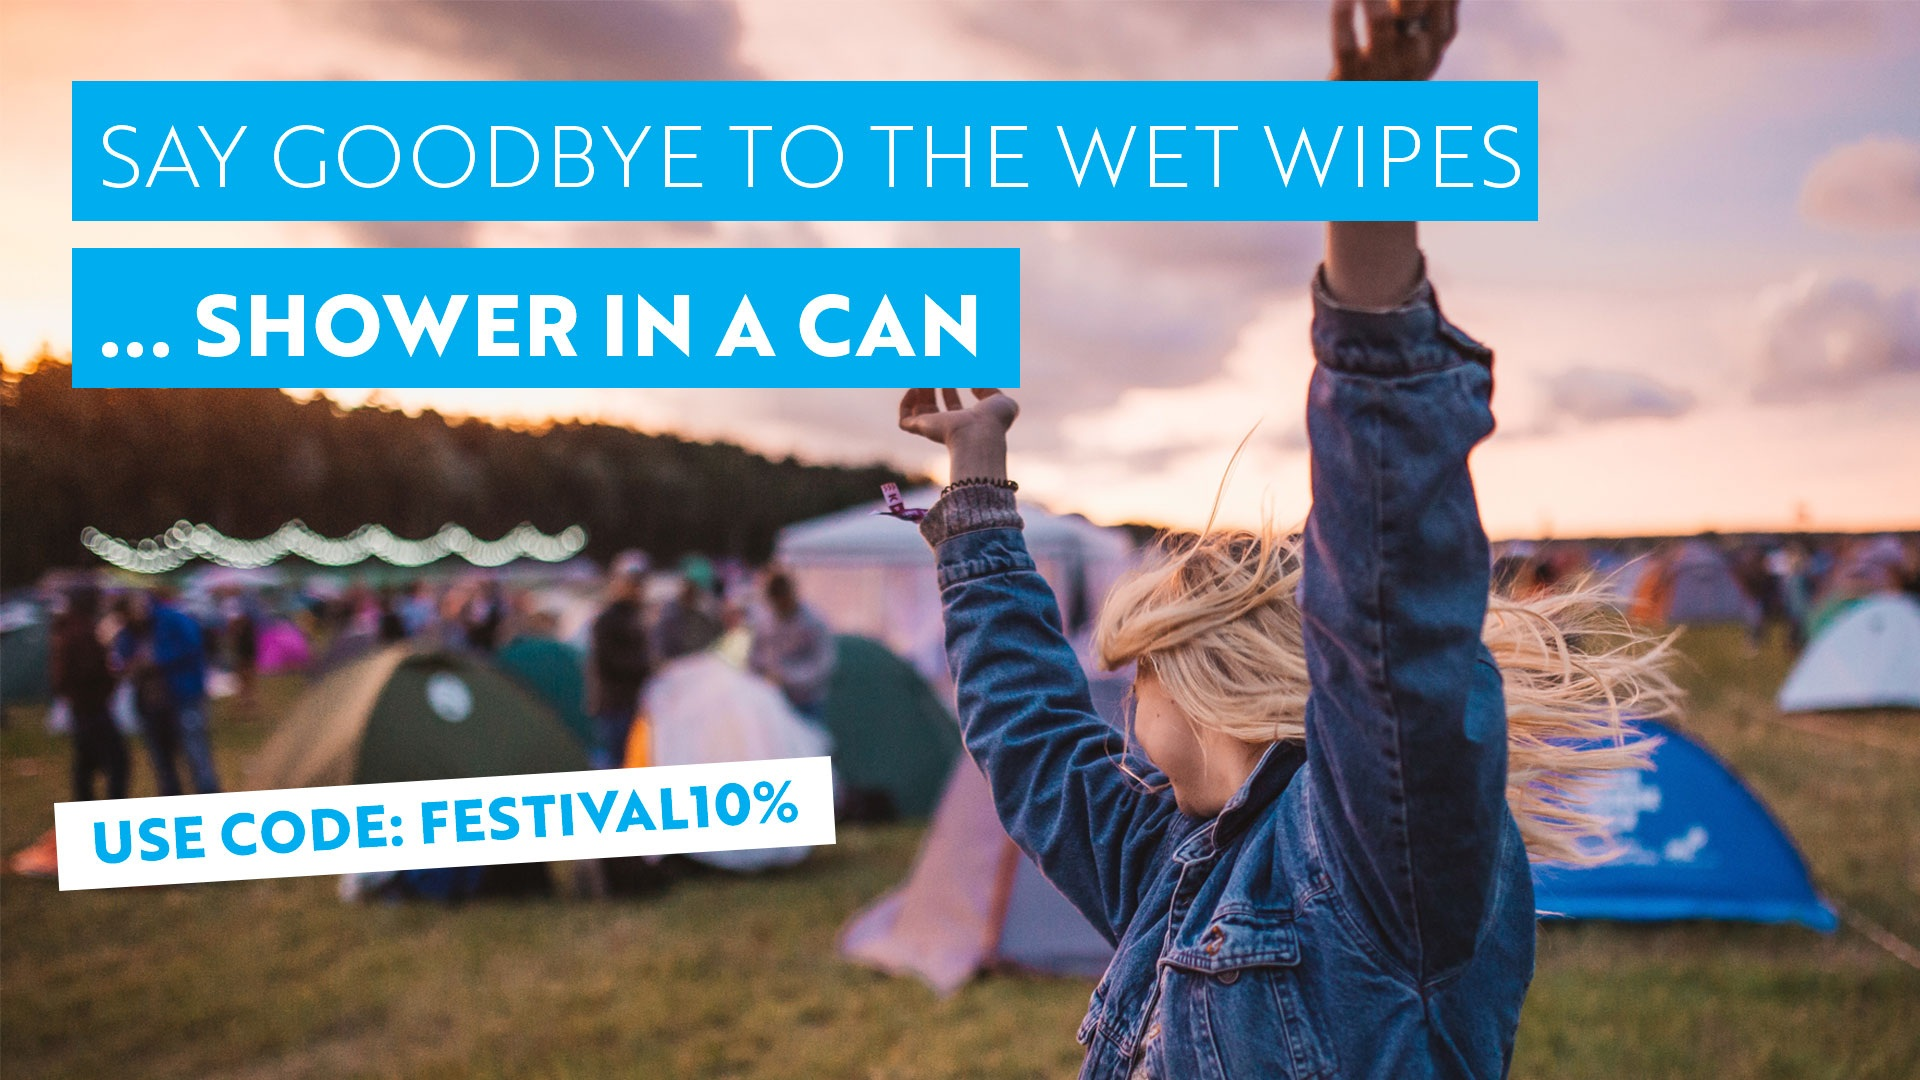 Shower-in-a-Can_Festival_Code.jpg